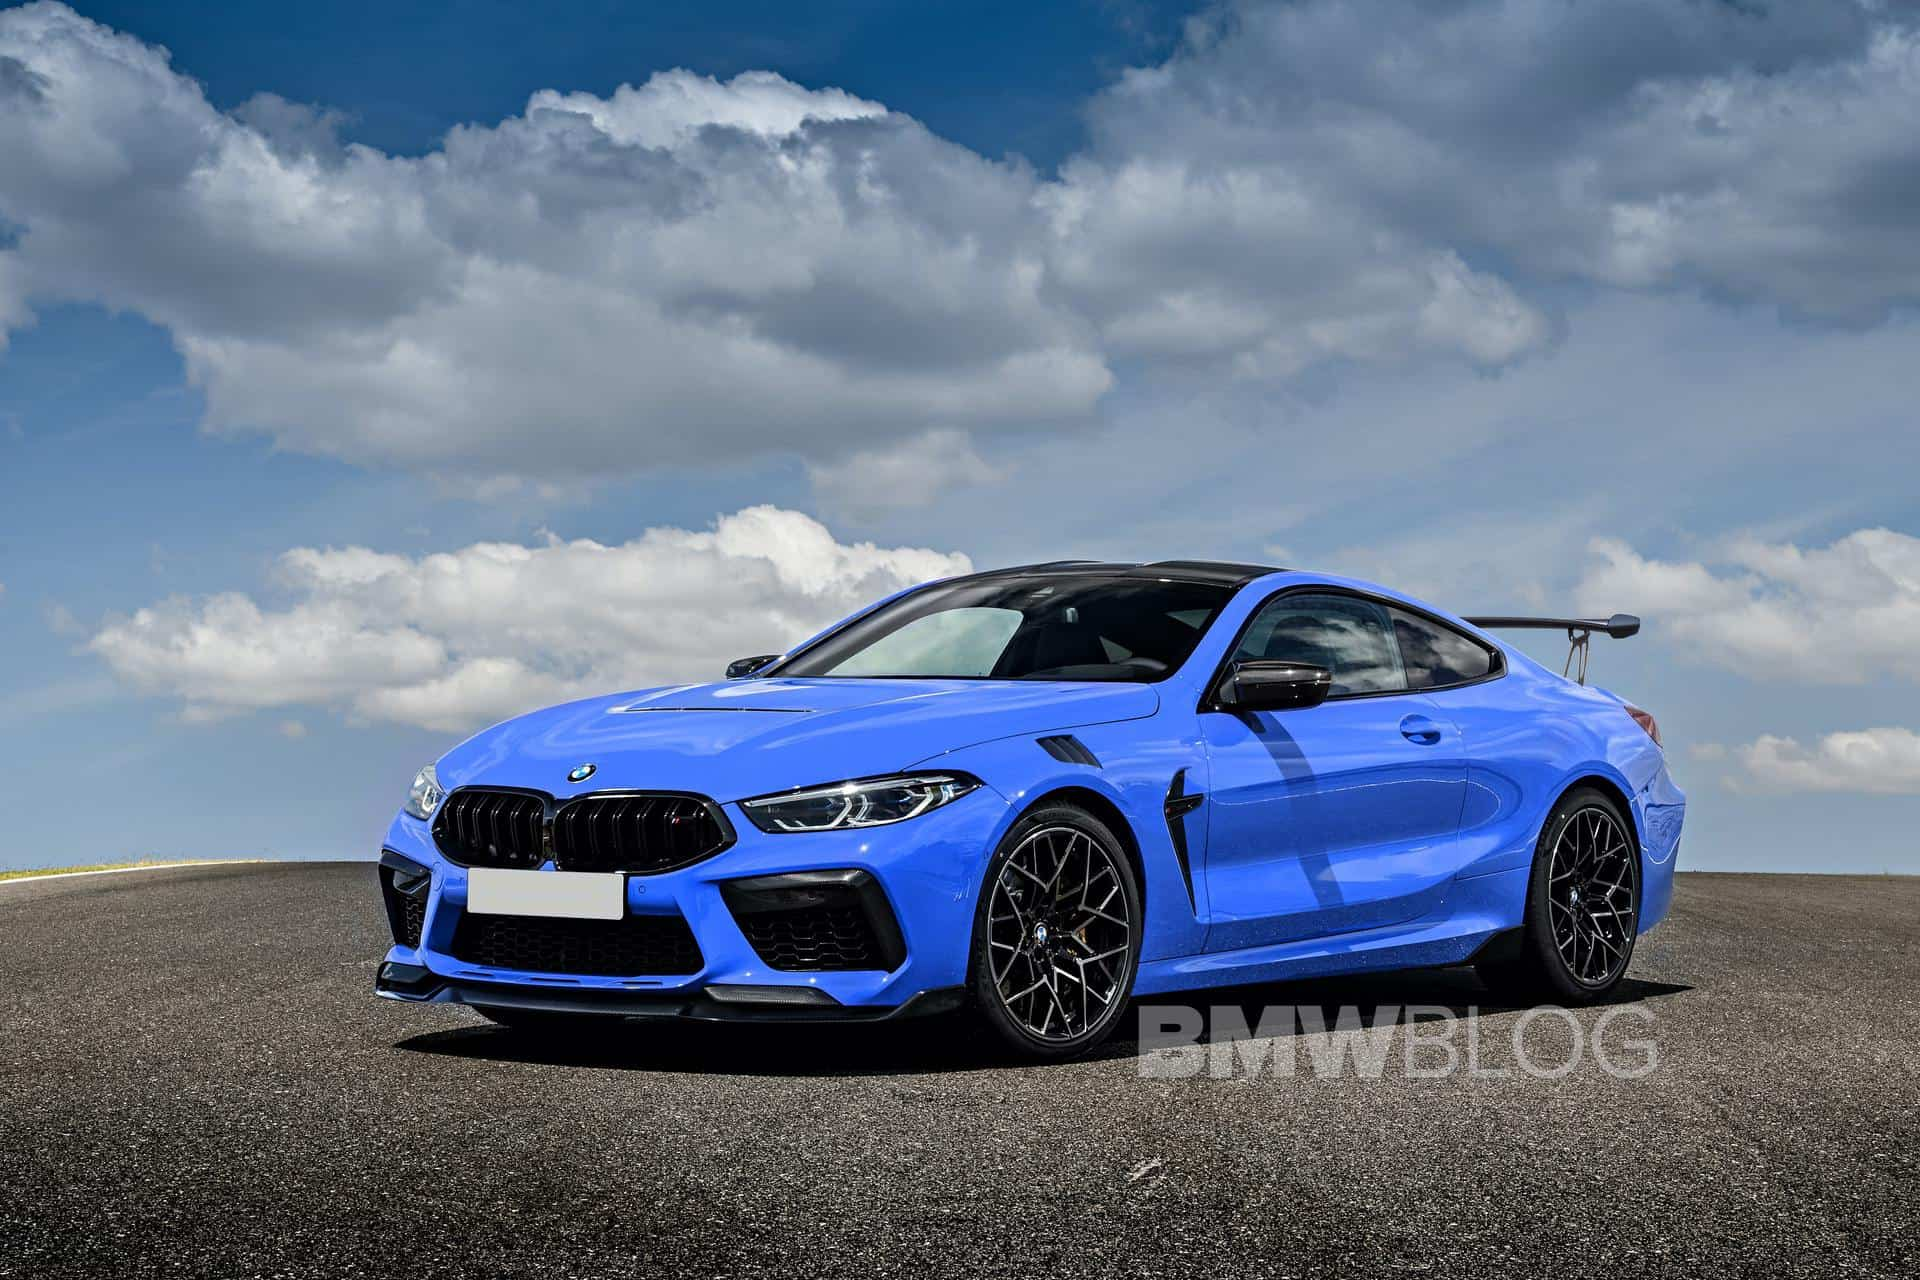 The new bmw m8 is based on the standard 8 series. Super Powerful Bmw M8 Csl Rumored To Arrive In 2022